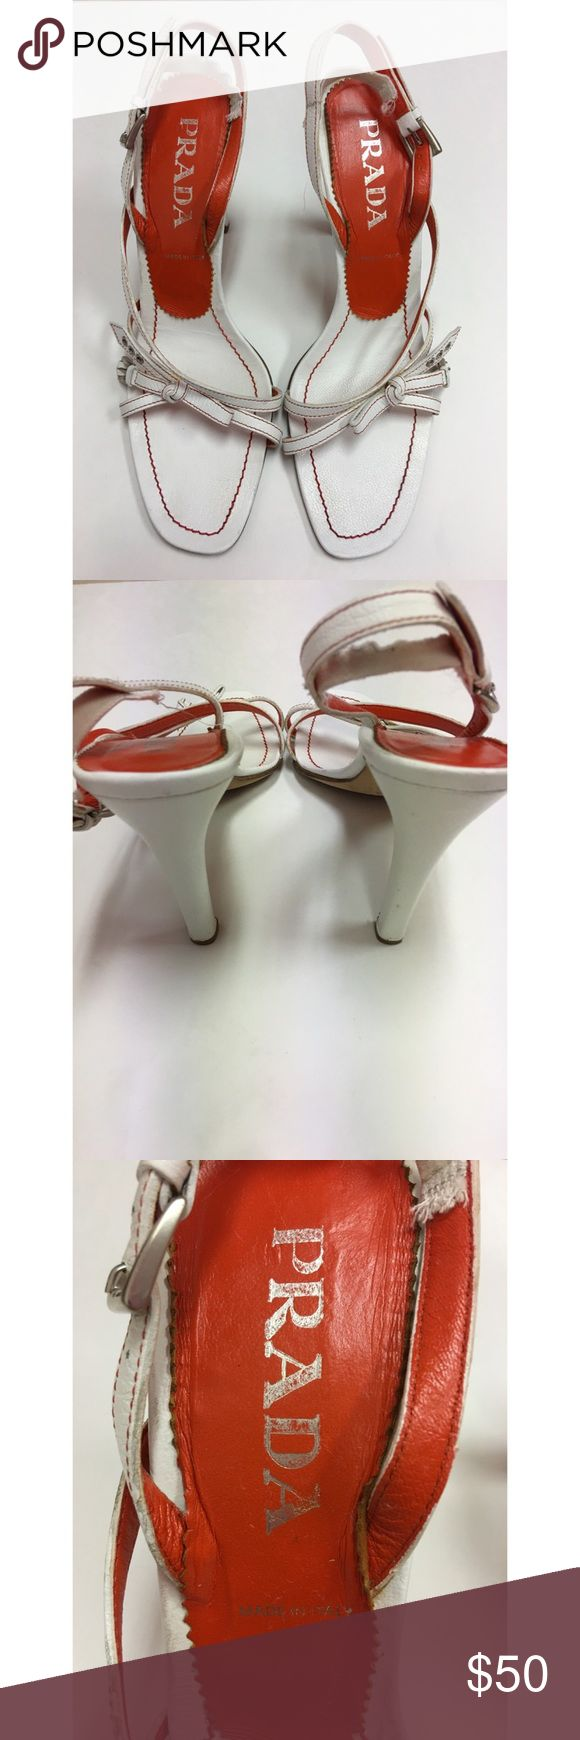 """Prada Heals AUTHENTIC SIZE 11 These gorgeous strapy Prada Heels are elegant and would complete a formal or work look beautifully!    •Size 41 (11 in US sizes)  •Has obvious signs of wear. Please see photos  •Heel measures 4"""" Prada Shoes Heels"""